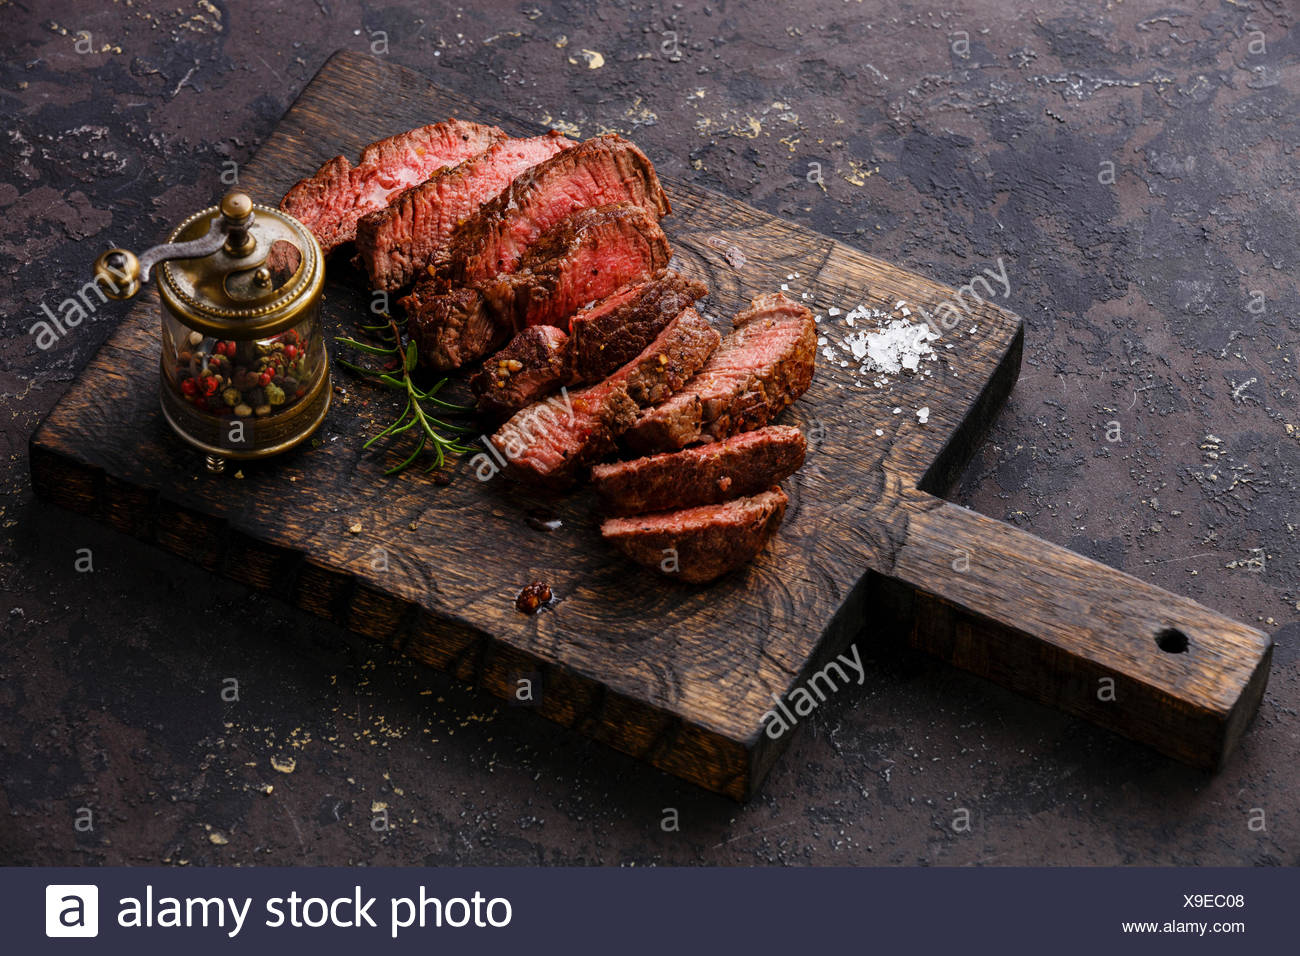 Sliced medium rare grilled Beef steak and pepper mill on wooden cutting board - Stock Image